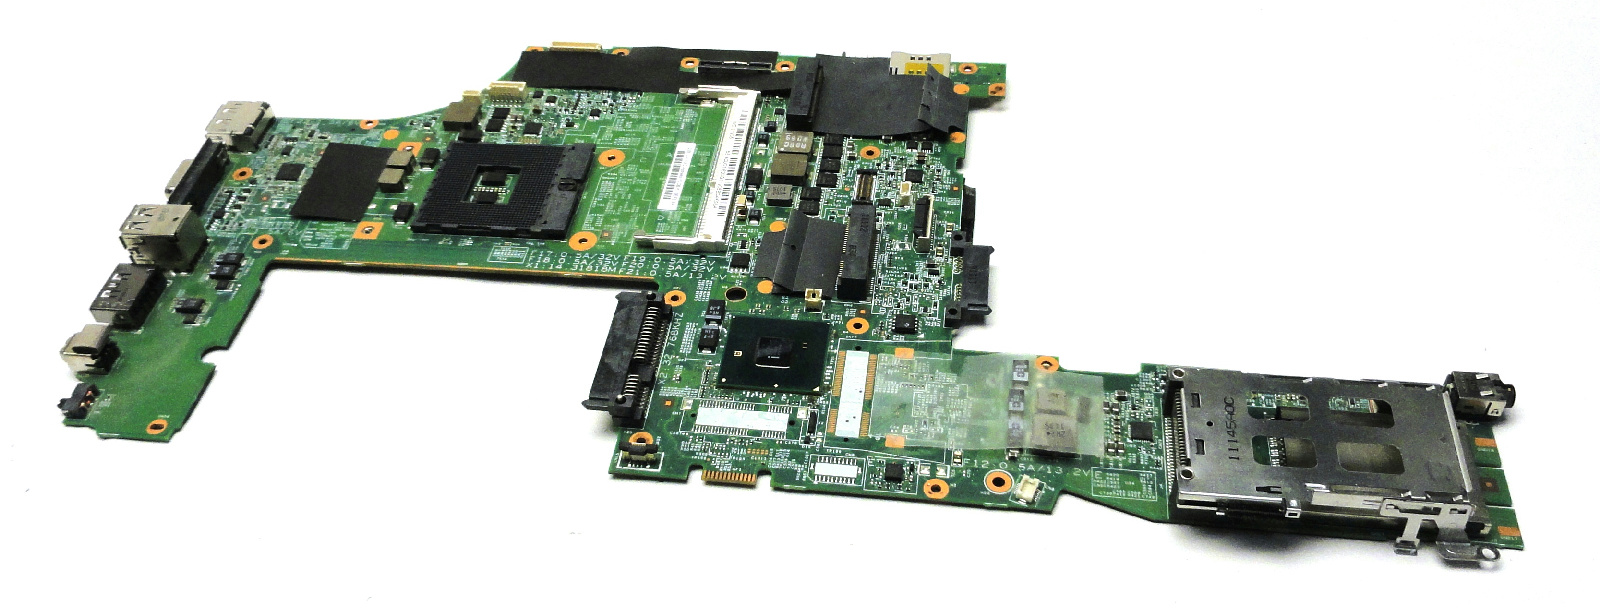 16x Lenovo Laptop Motherboards